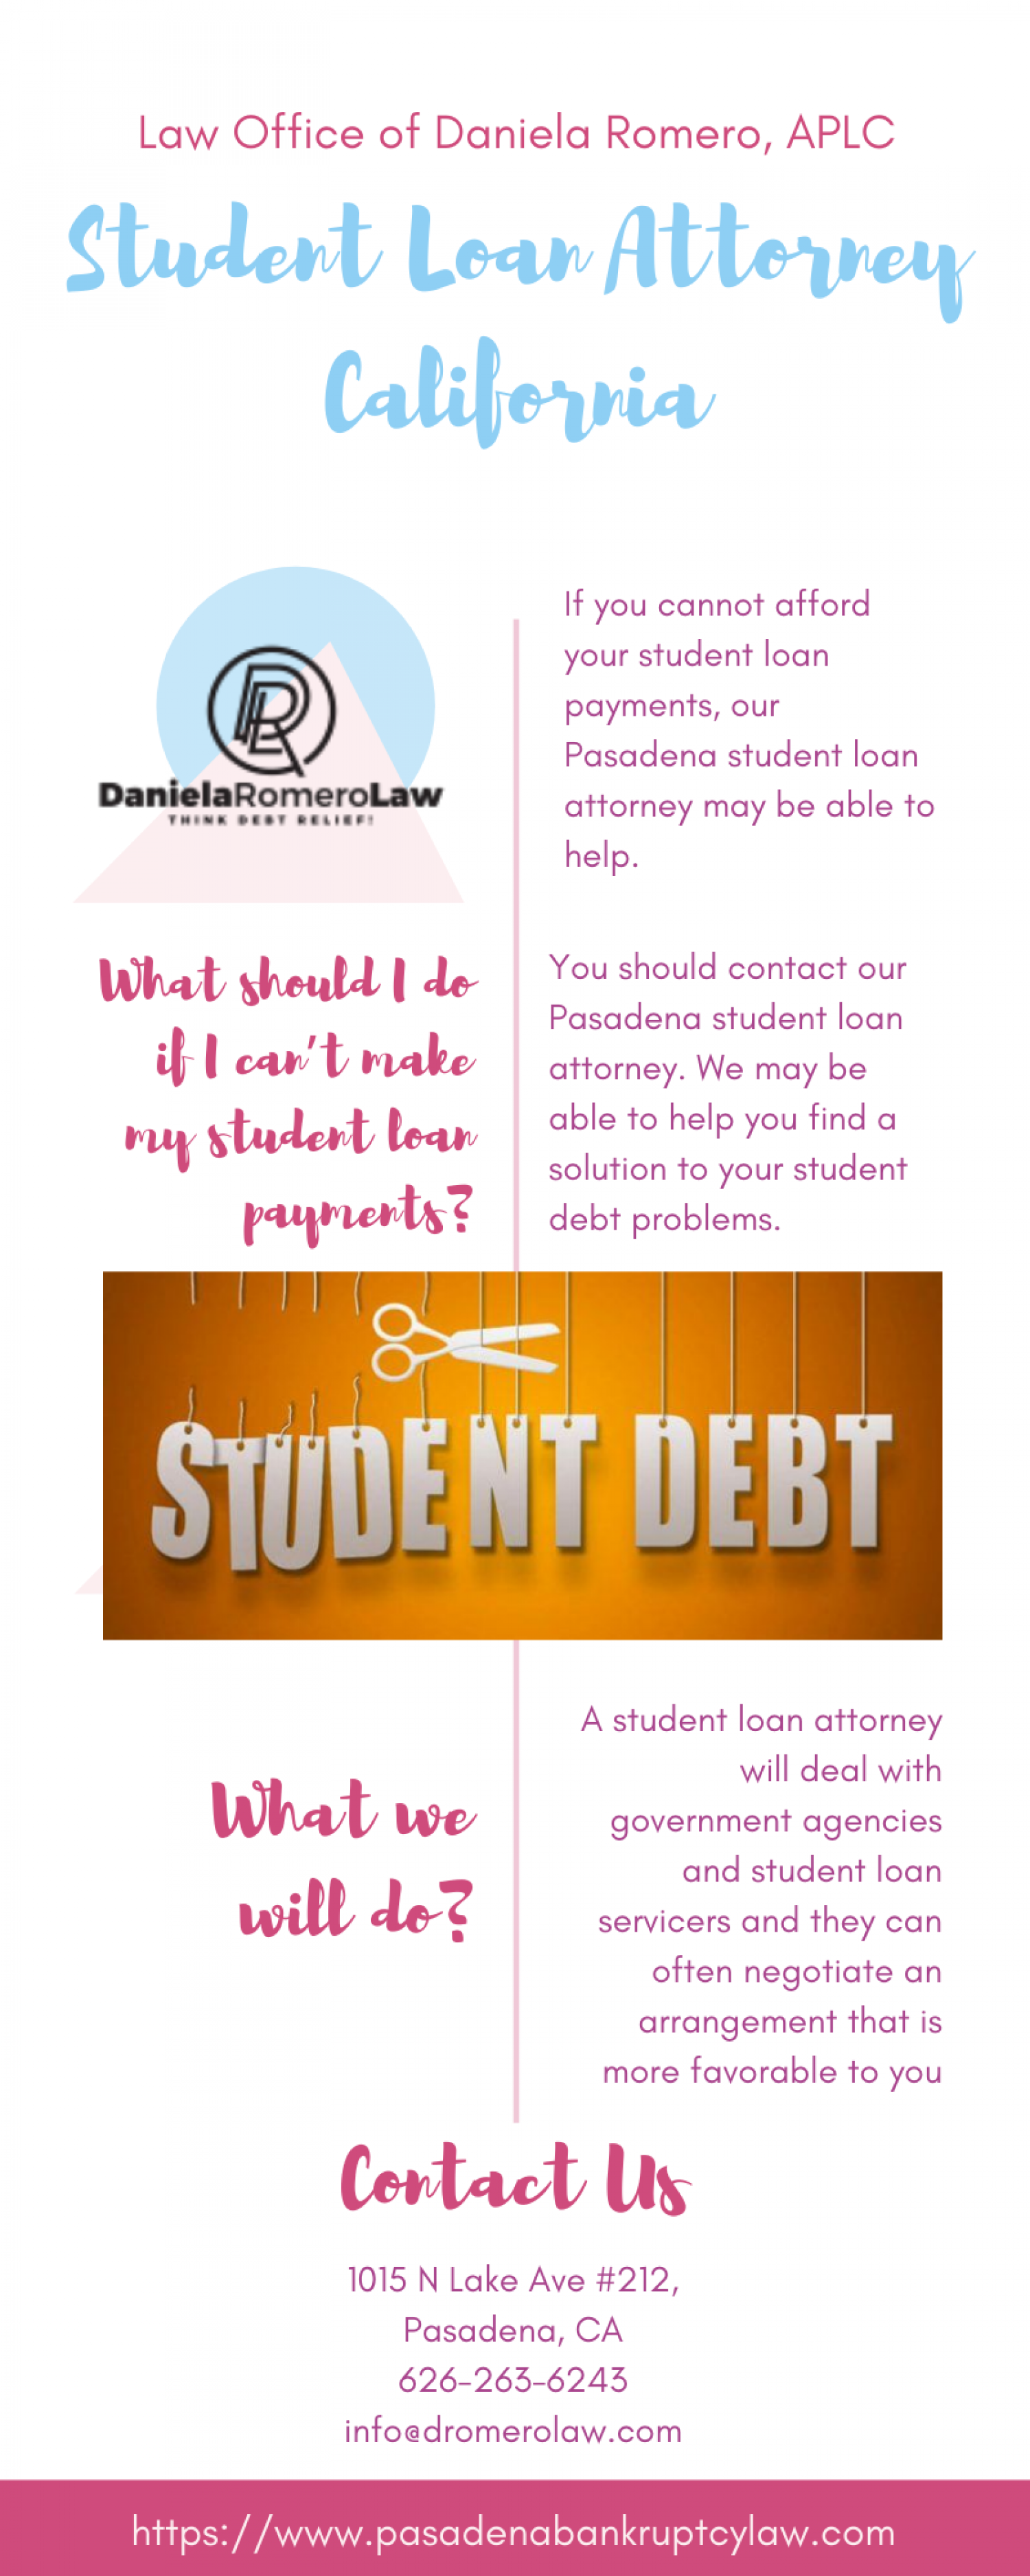 Student Loan Attorney California Infographic